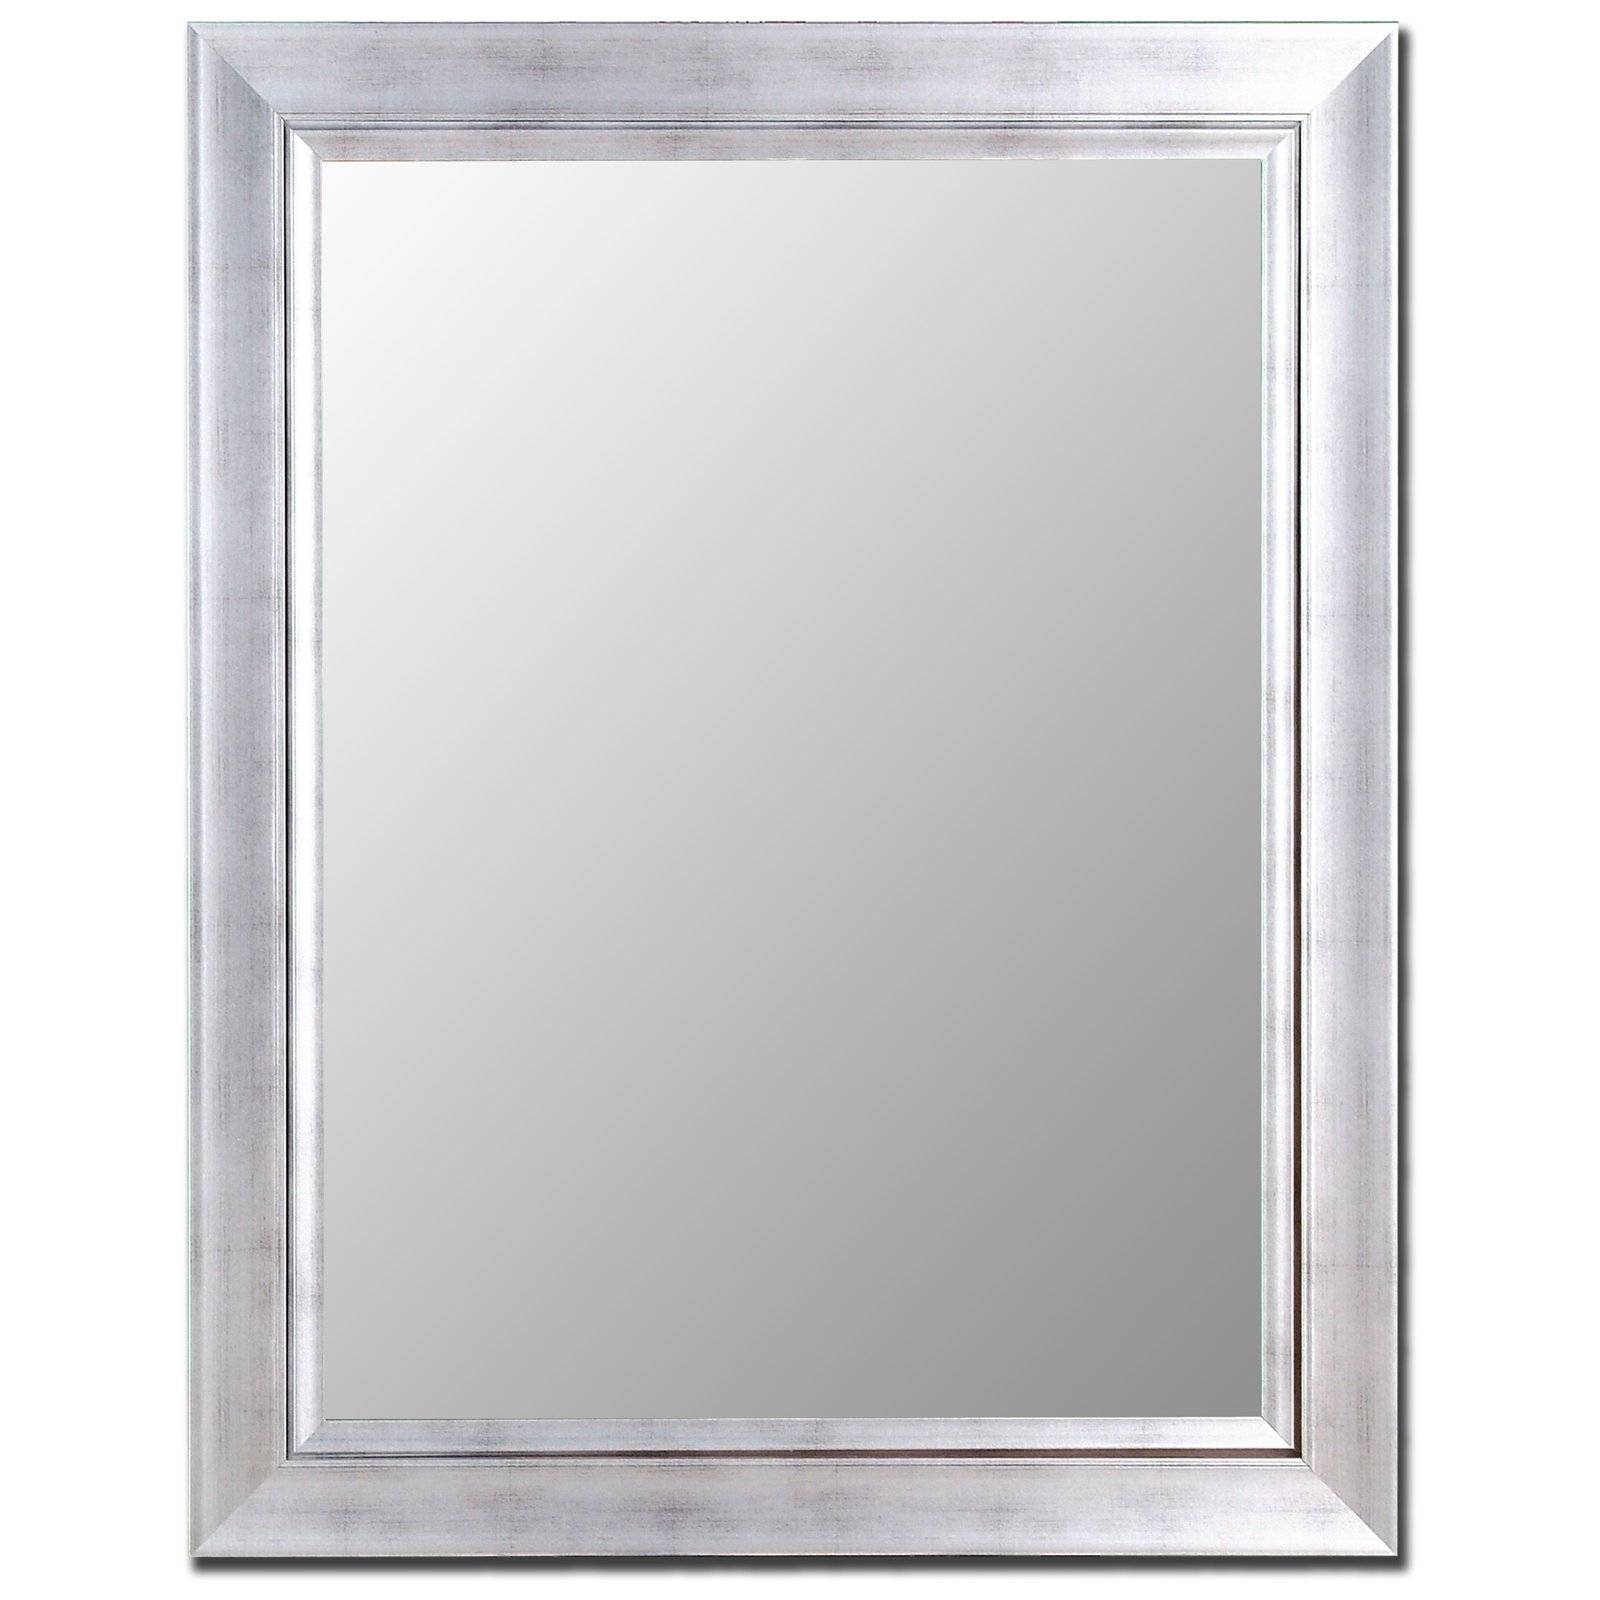 Silver & Stainless Mirror | Hayneedle Inside Silver Mirrors (View 17 of 25)